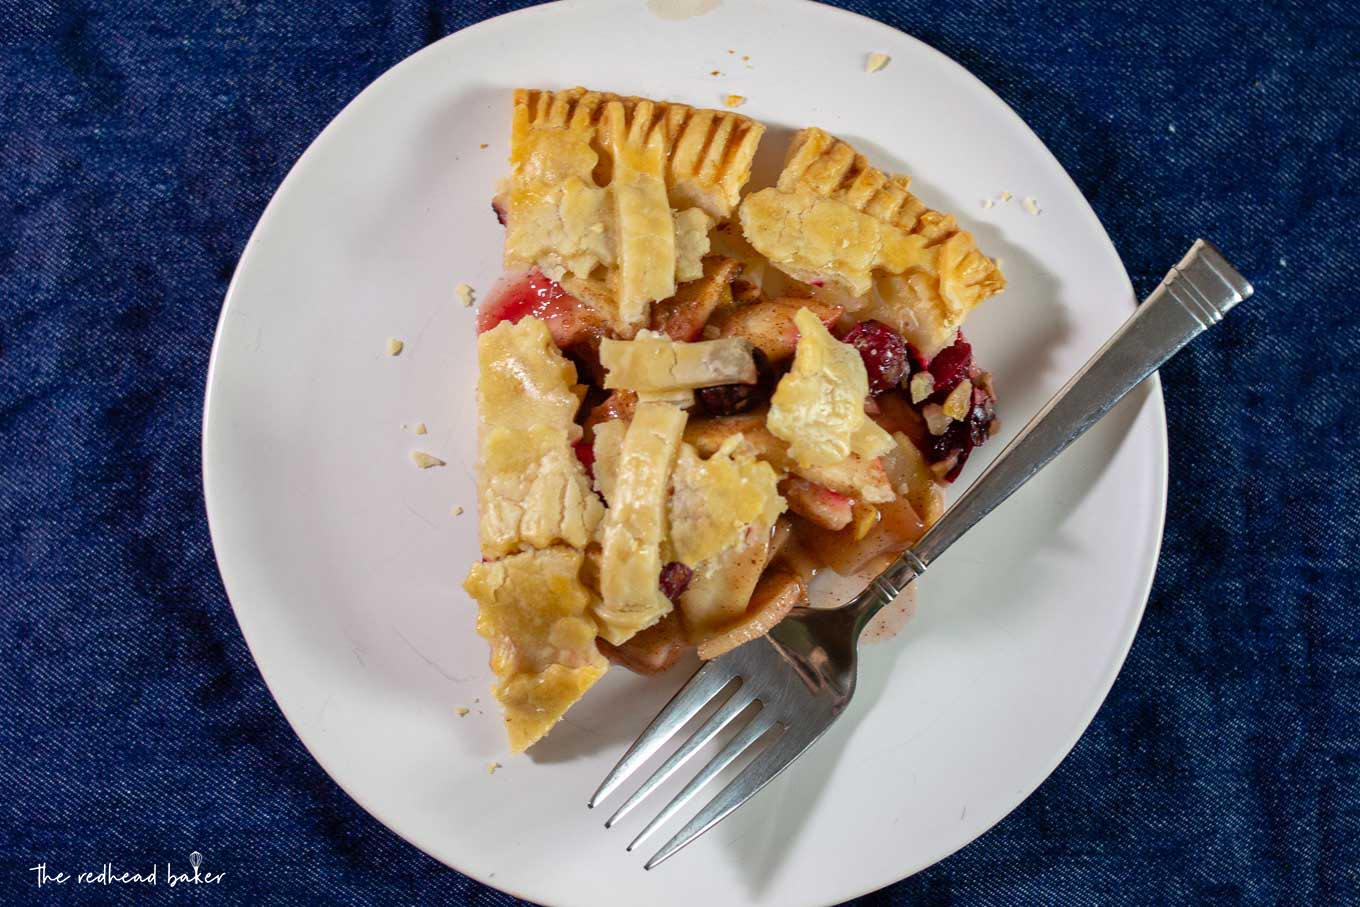 An overhead shot of a slice of cranberry apple pie